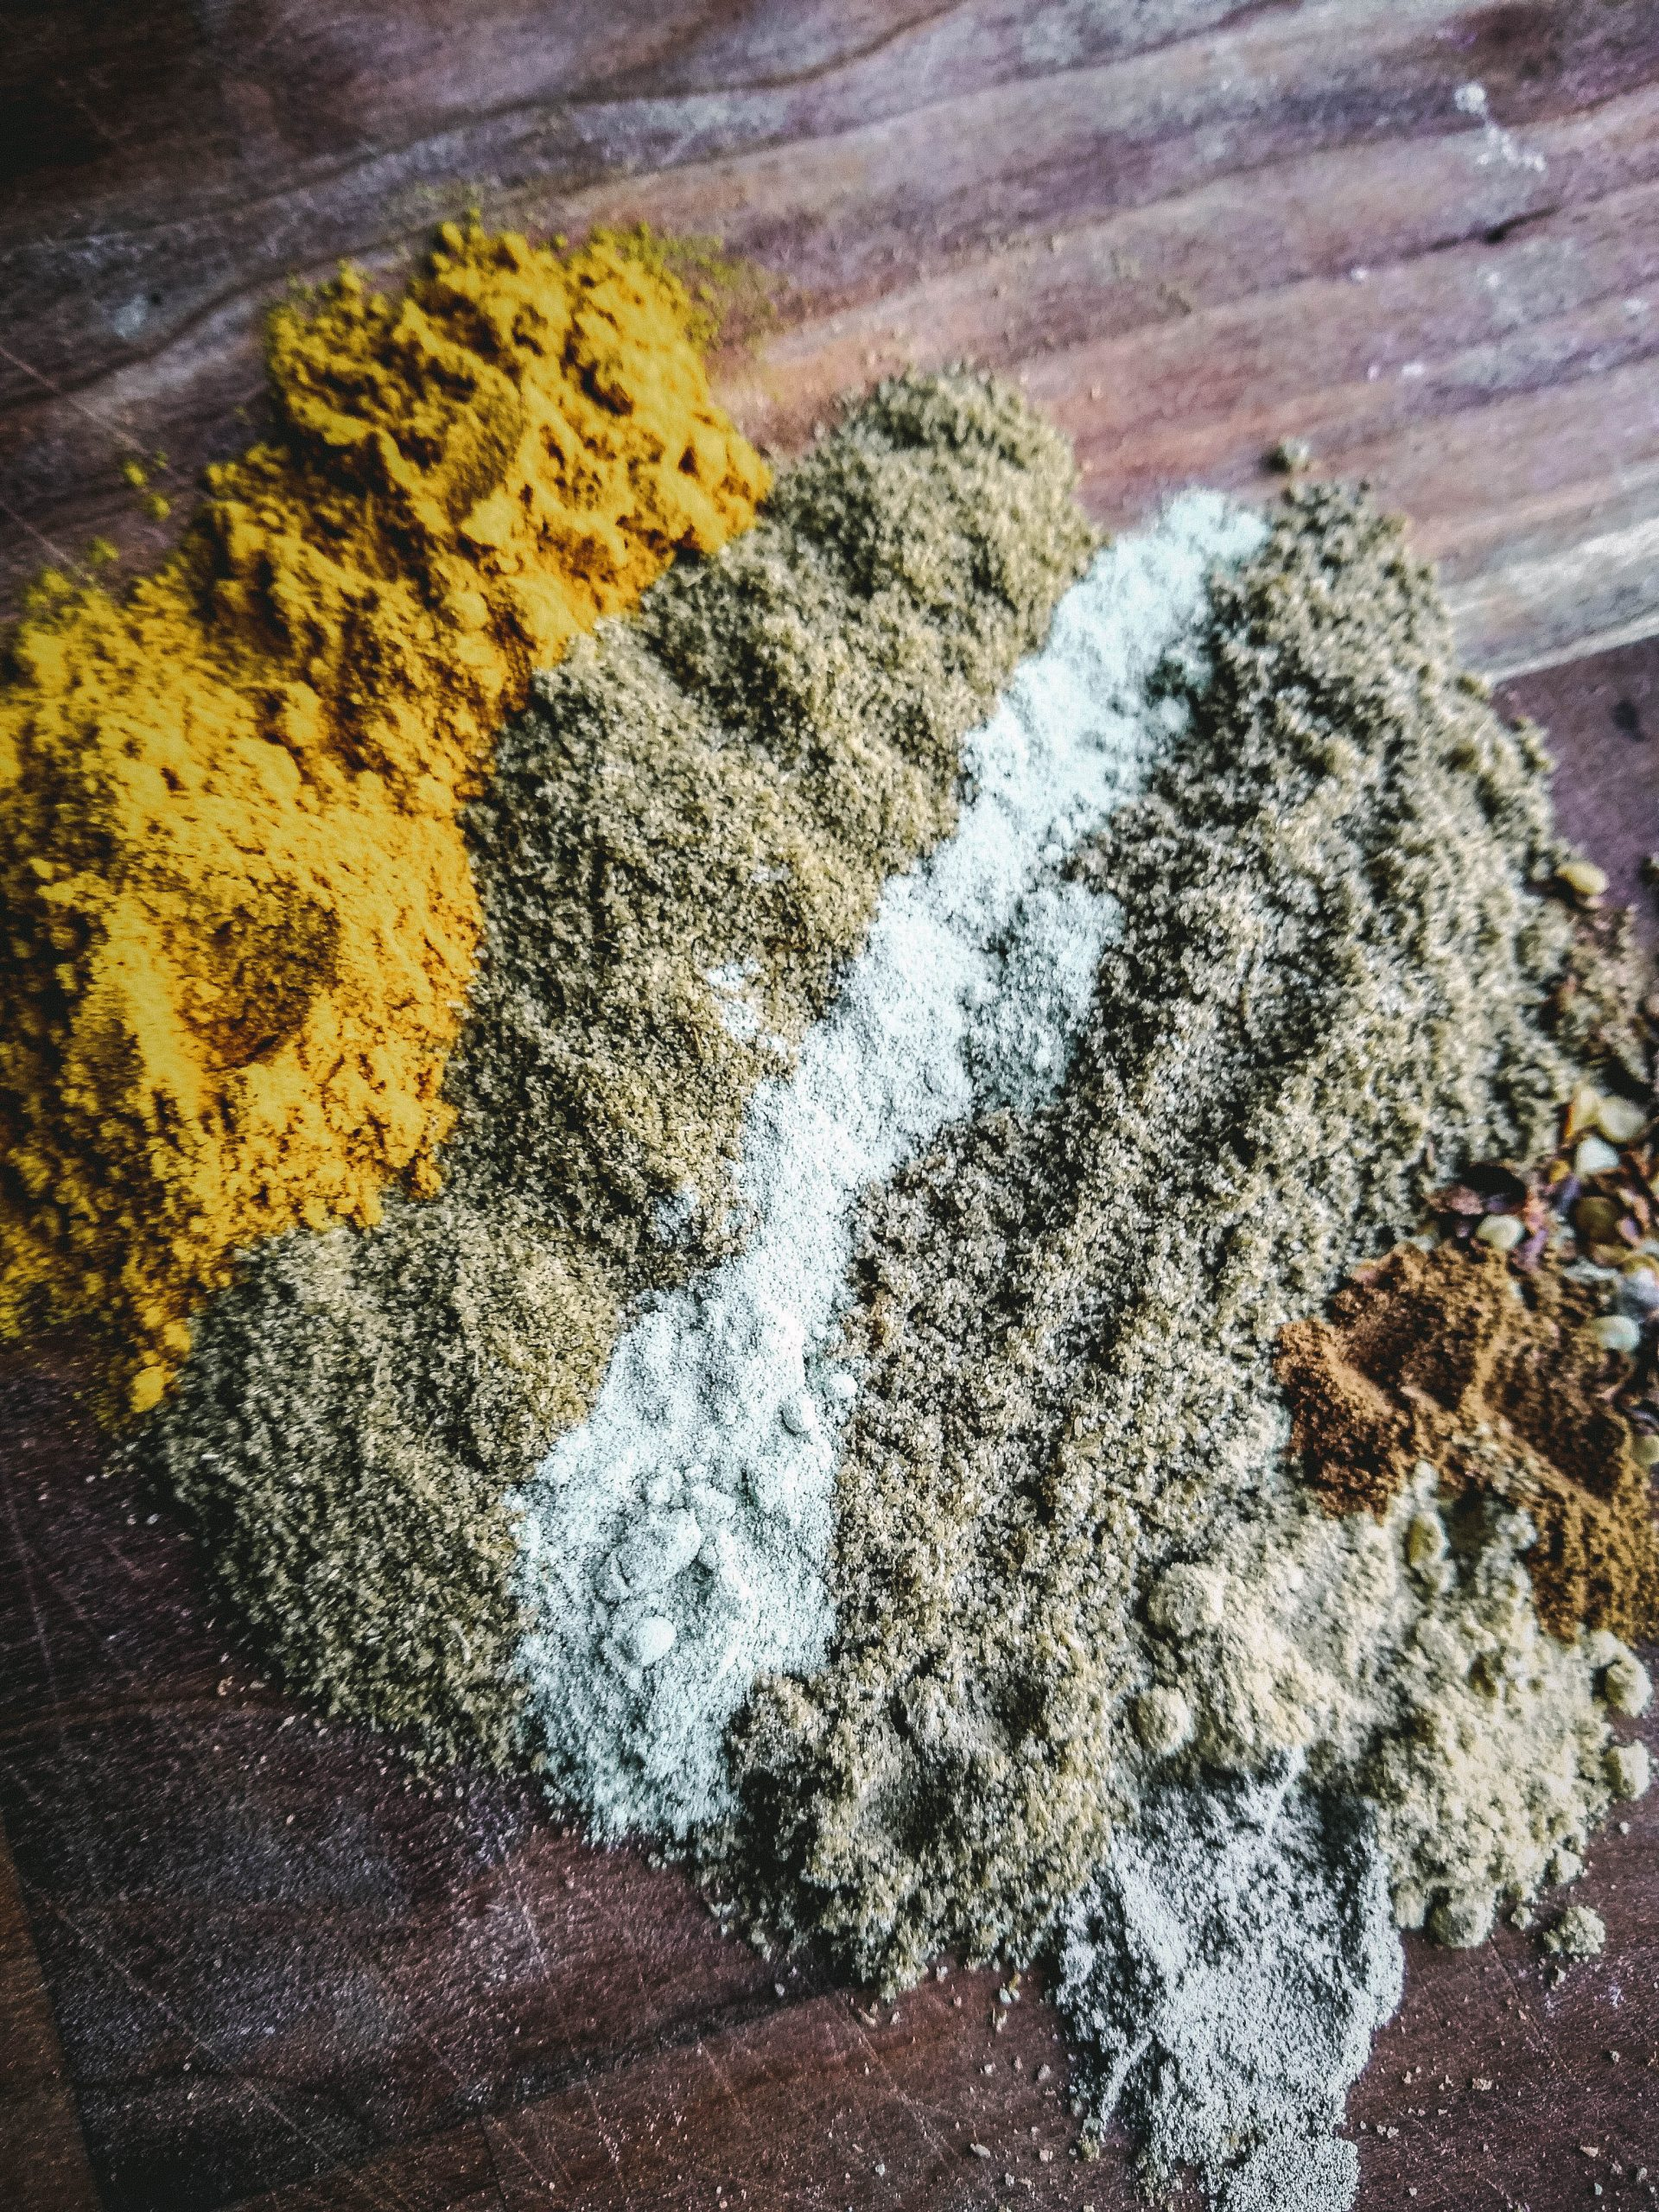 I love making my own spice mixes including this curry powder. You can use all pre-ground spices or buy whole and grind them yourself. I usually use a mixture of ground and whole depending on what I have on hand.